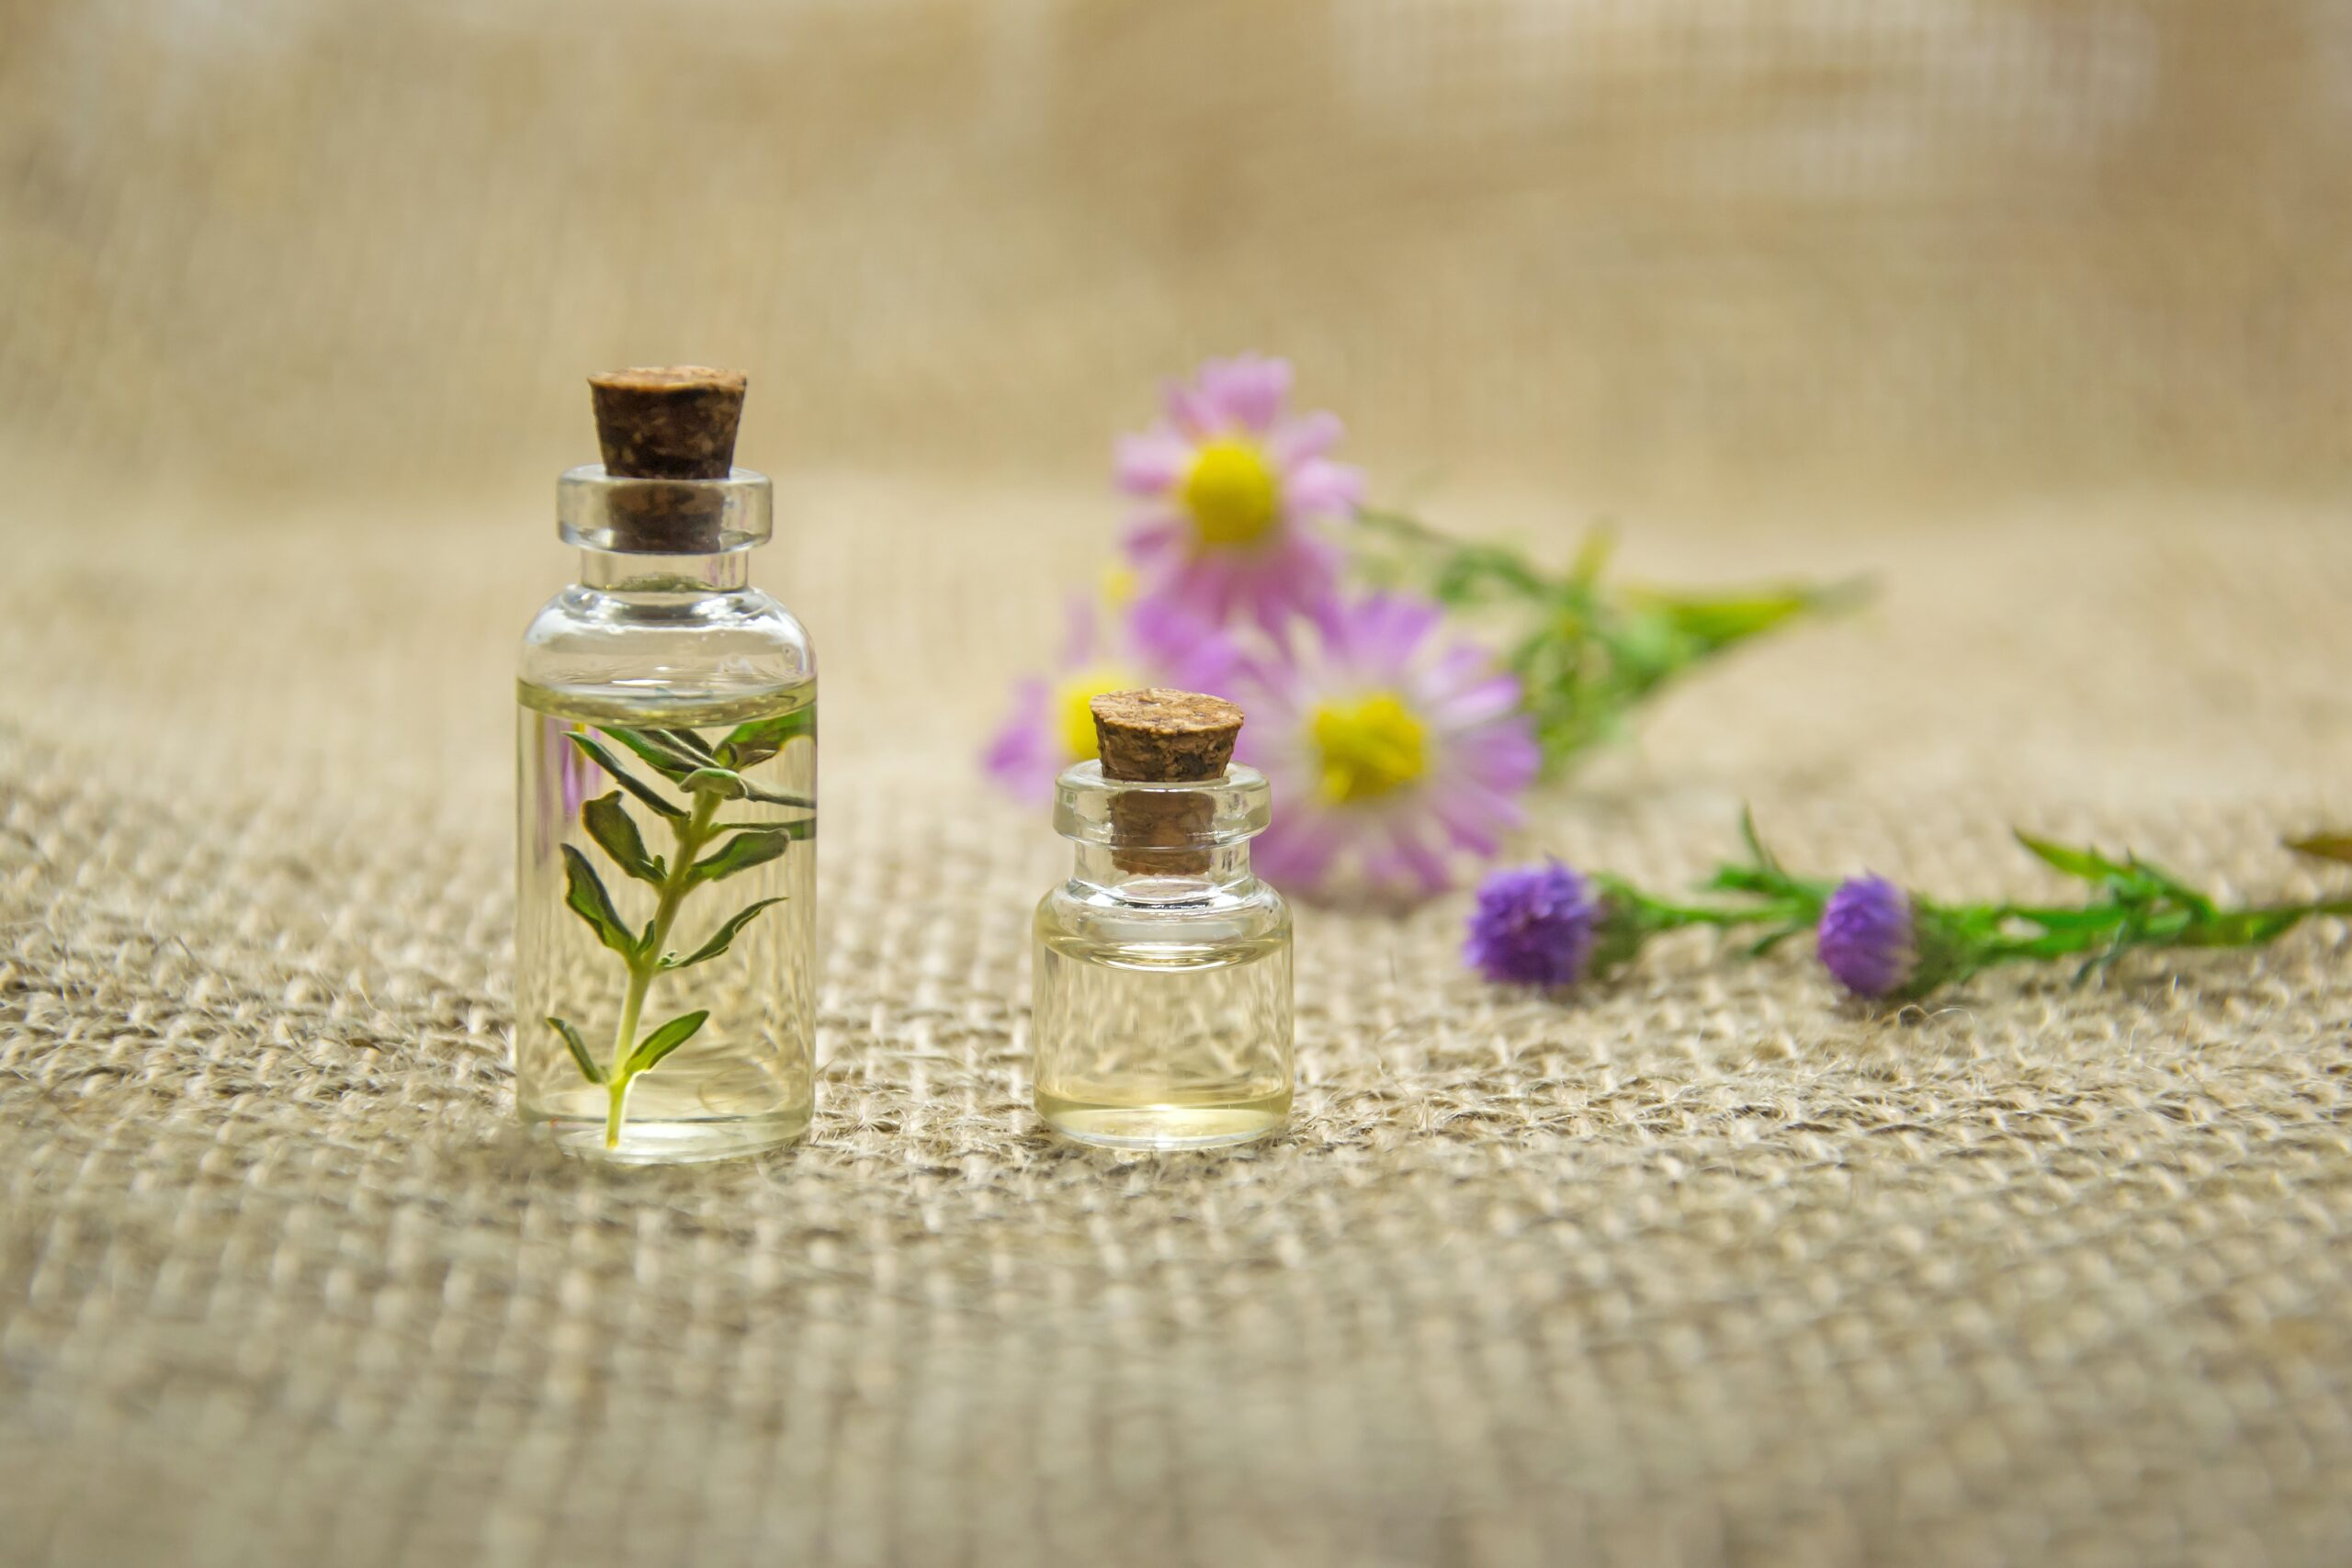 Bottles of essential oil with flowers behind.